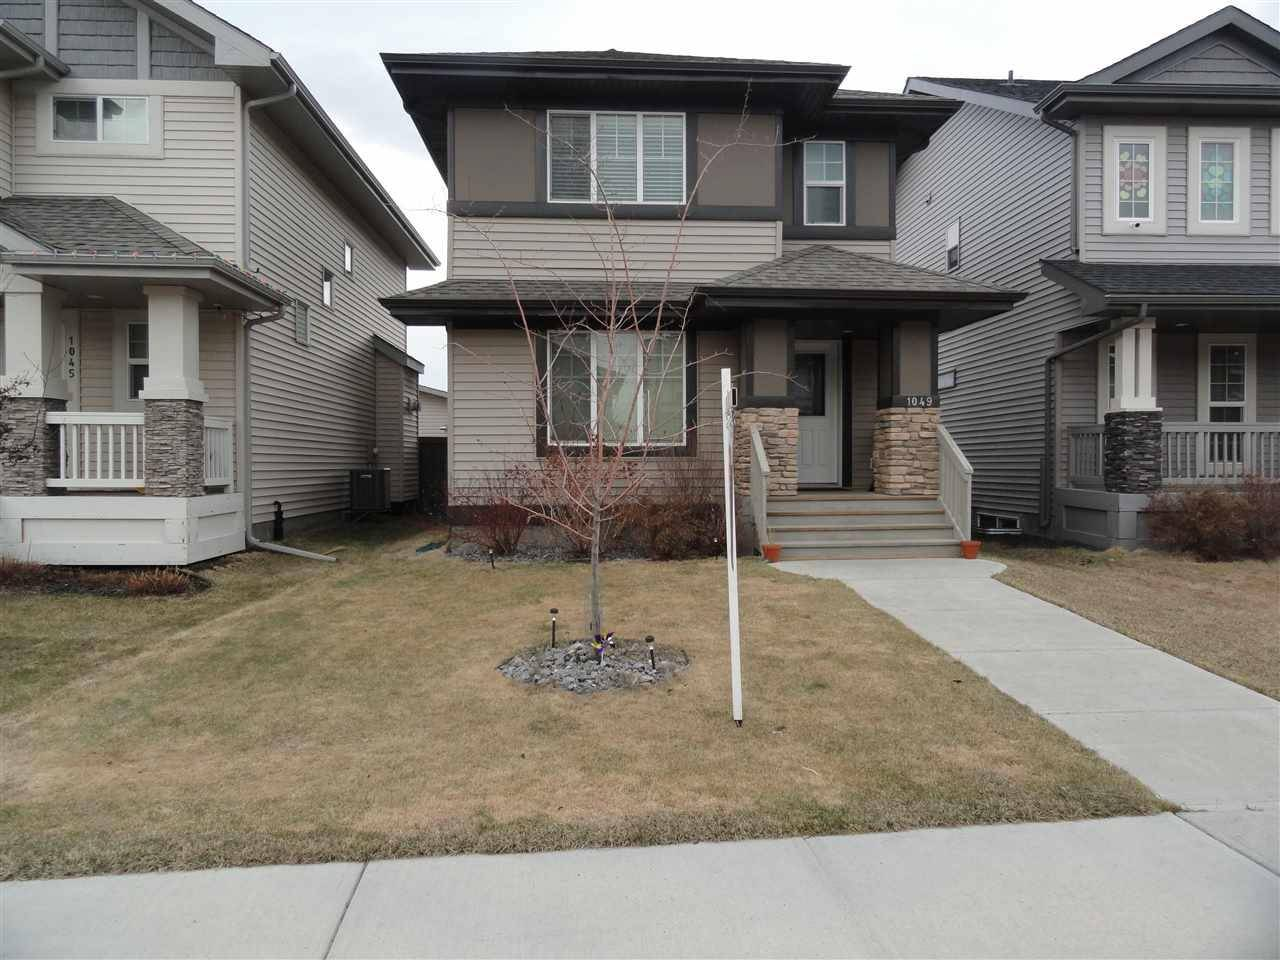 House for sale at 1049 177a St Sw Edmonton Alberta - MLS: E4182291